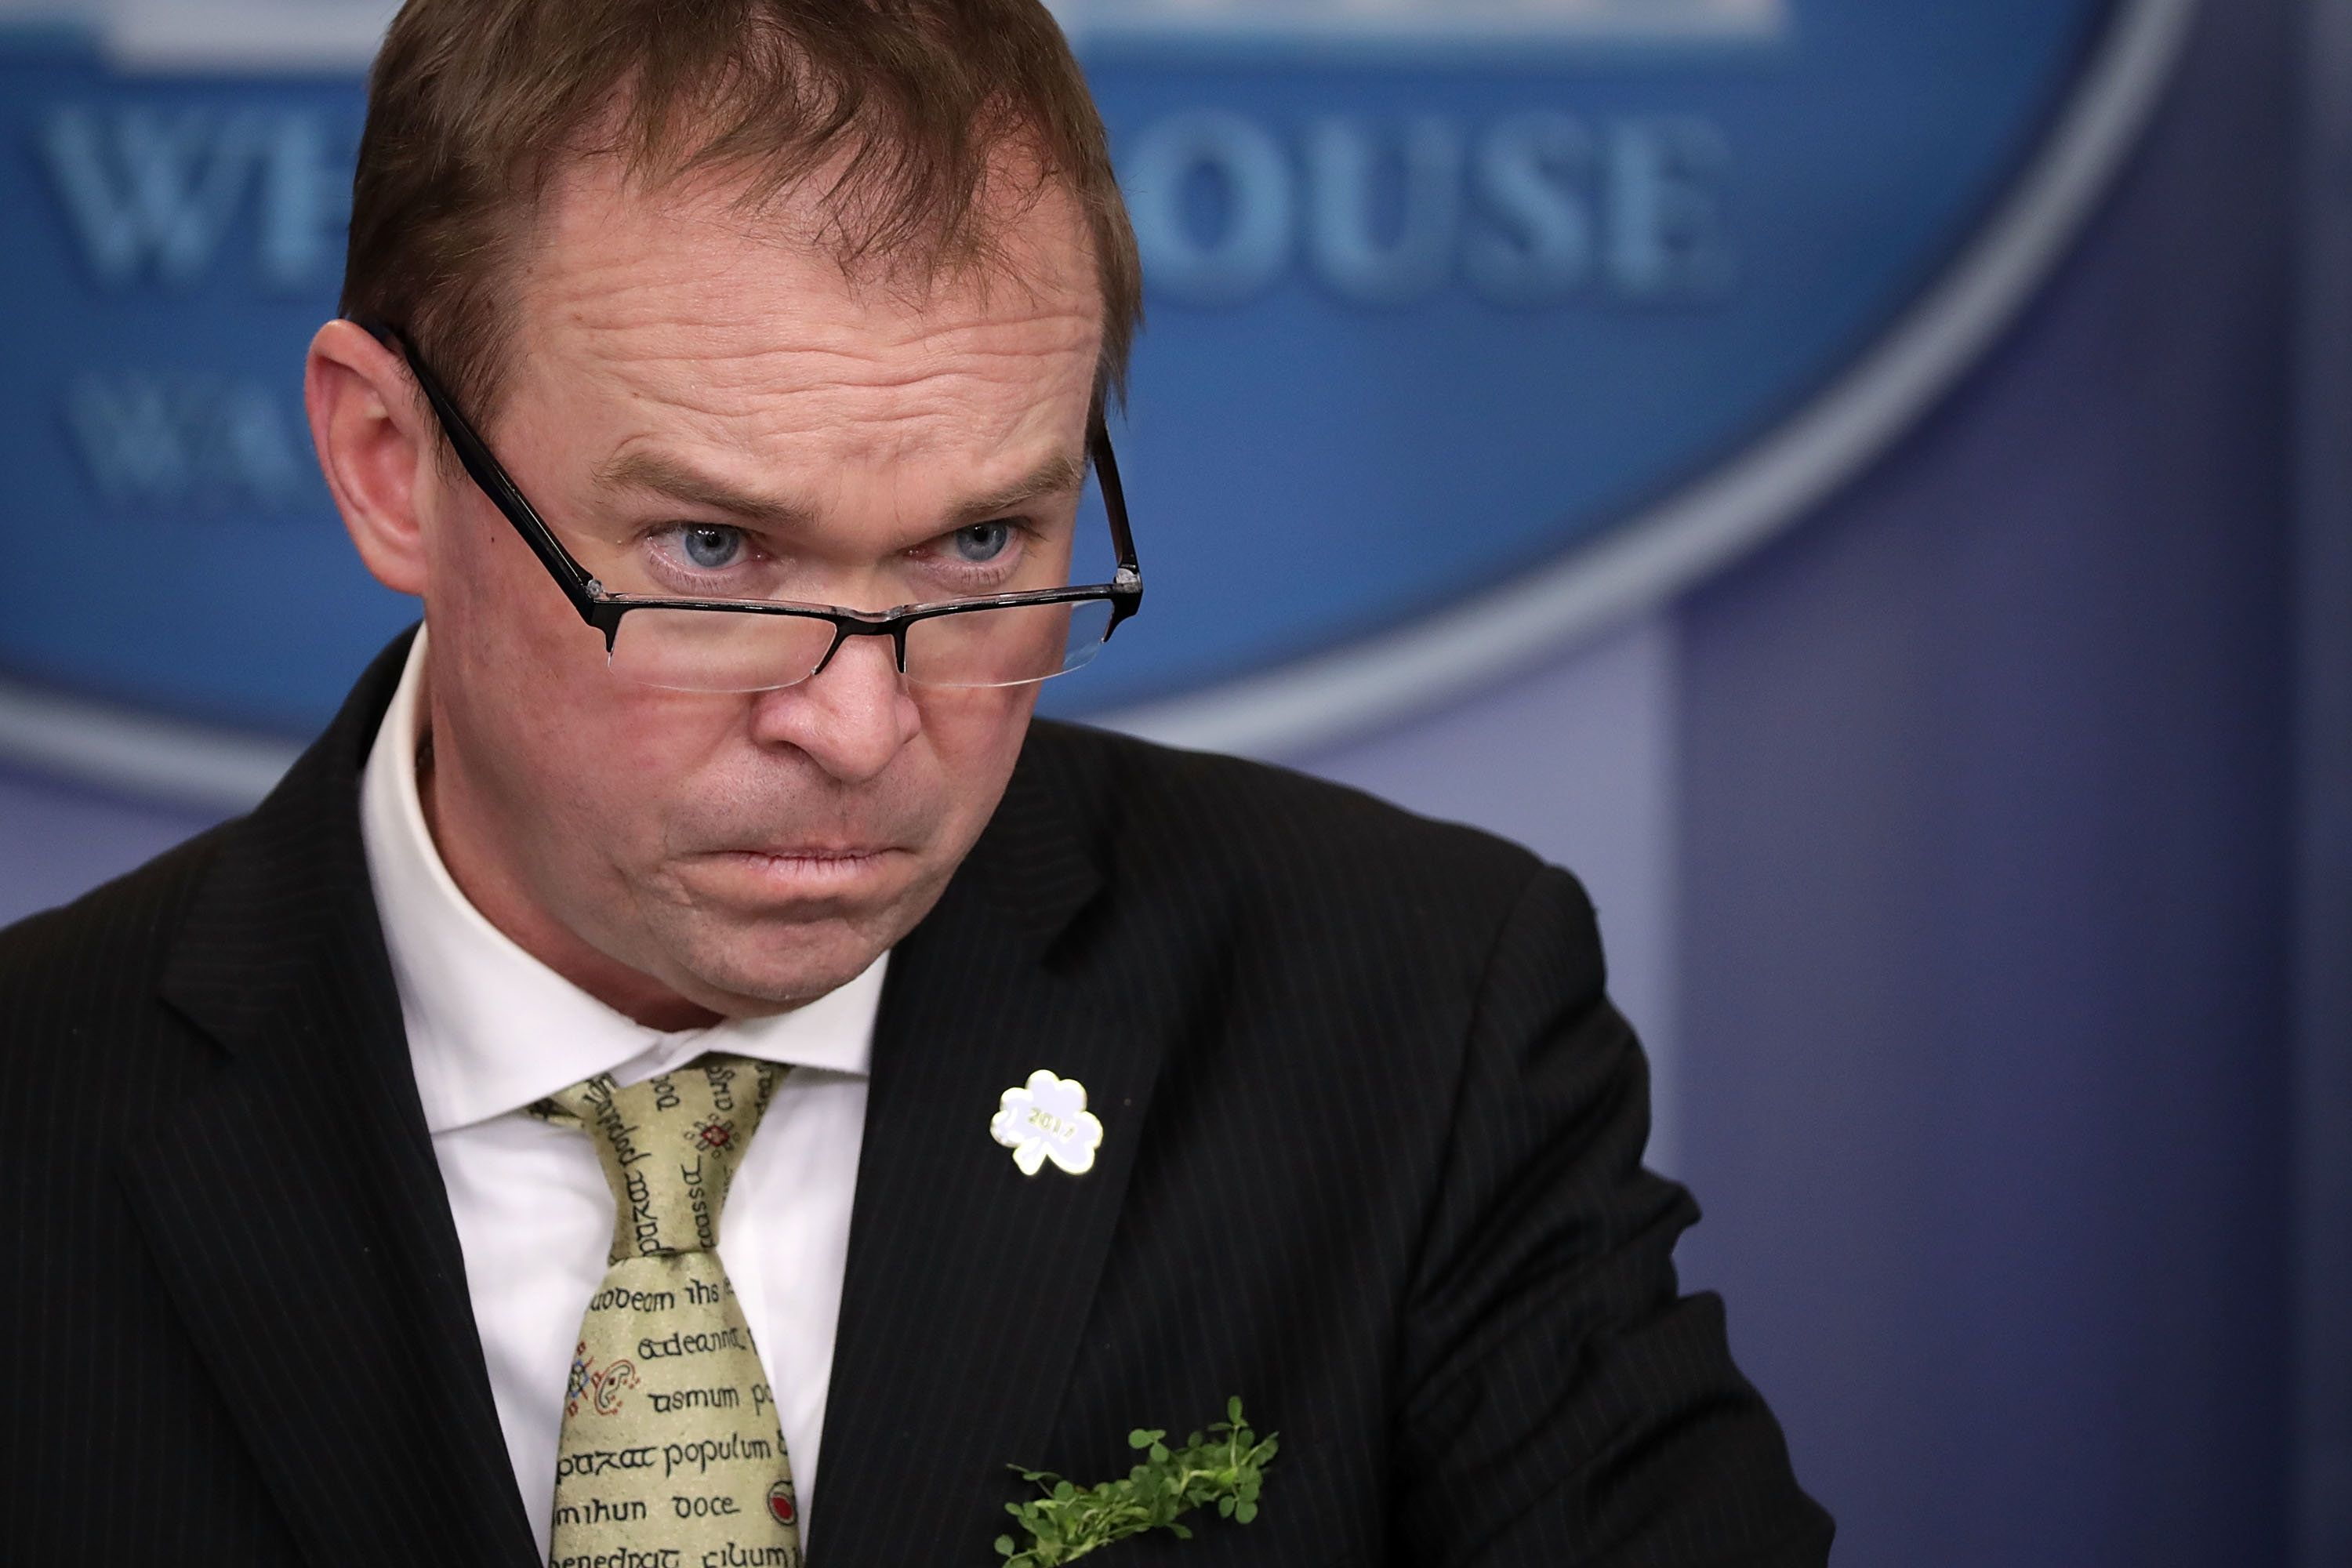 WASHINGTON, DC - MARCH 16:  Office of Management and Budget Director Mick Mulvaney takes questions from reporters during a briefing in the Brady Press Briefing Room at the White House March 16, 2017 in Washington, DC. Mulvaney took questions about President Donald Trump's federal budget blueprint which was released Thursday.  (Photo by Chip Somodevilla/Getty Images)